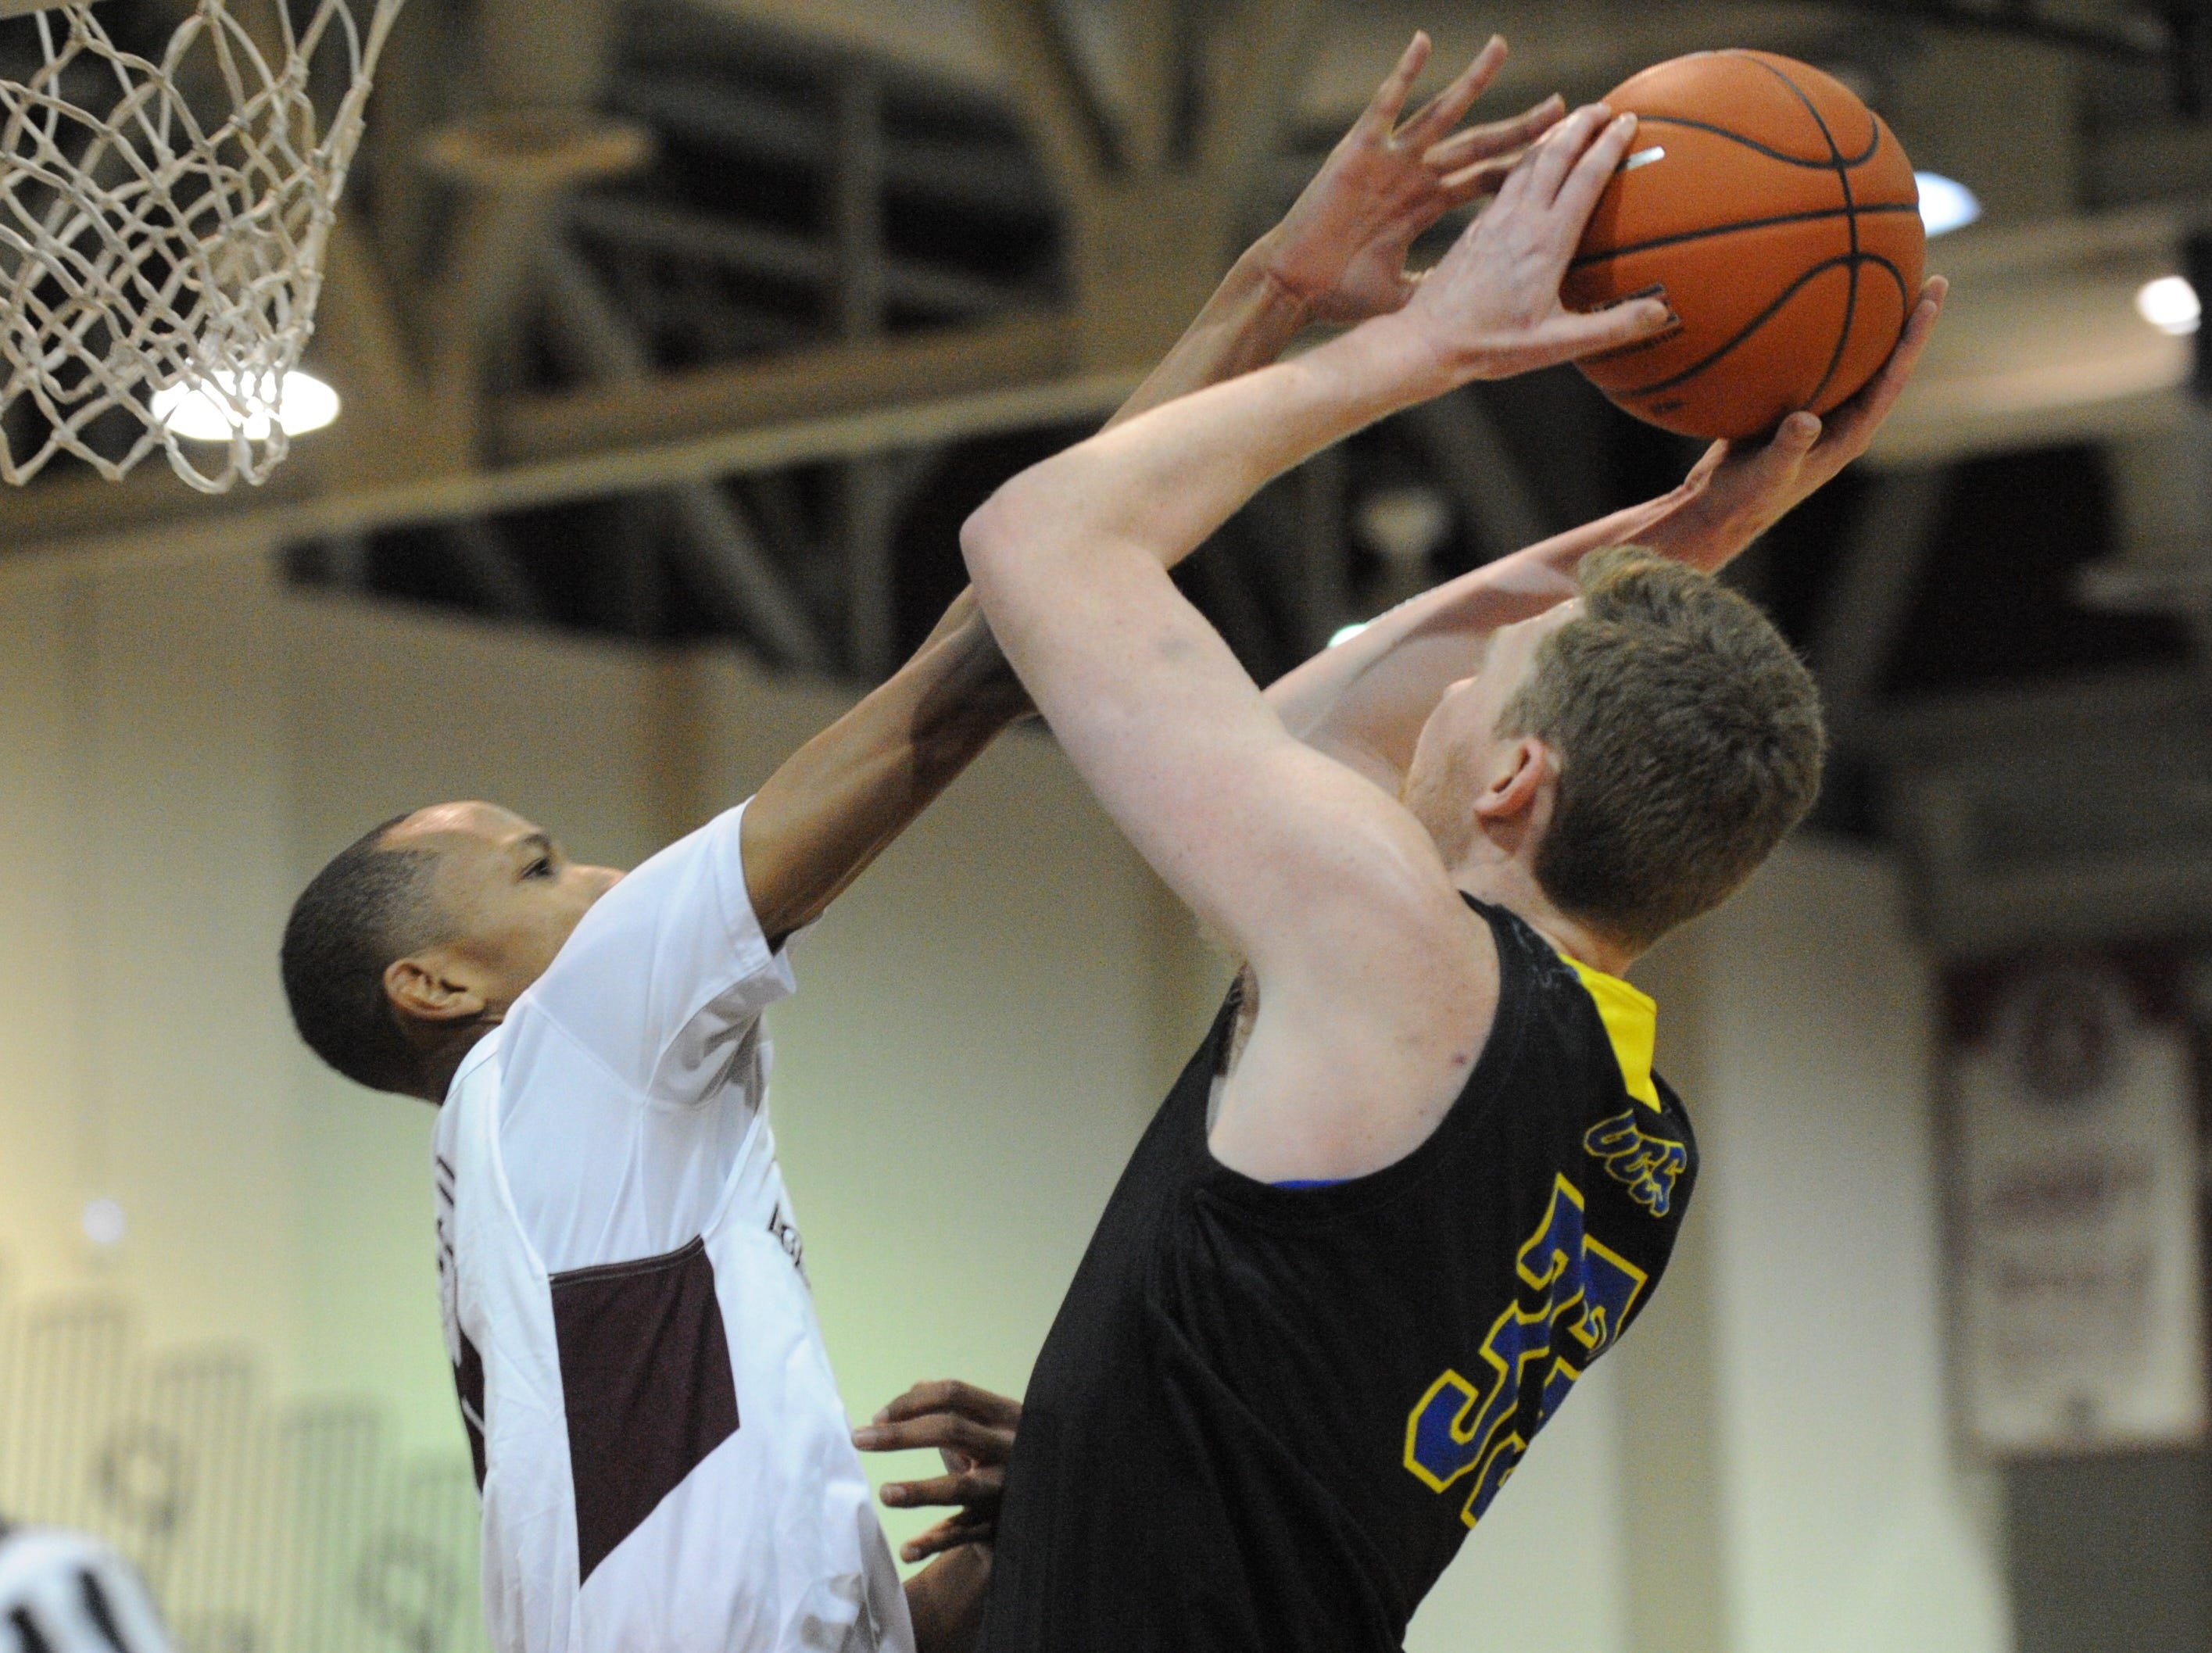 University of Delaware forward Collin Goss gets a shot blocked by University of Maryland Eastern Shore guard Montraz Oliver on Friday, Nov. 30, 2018. The Blue Hens beat the Hawks, 71-62.